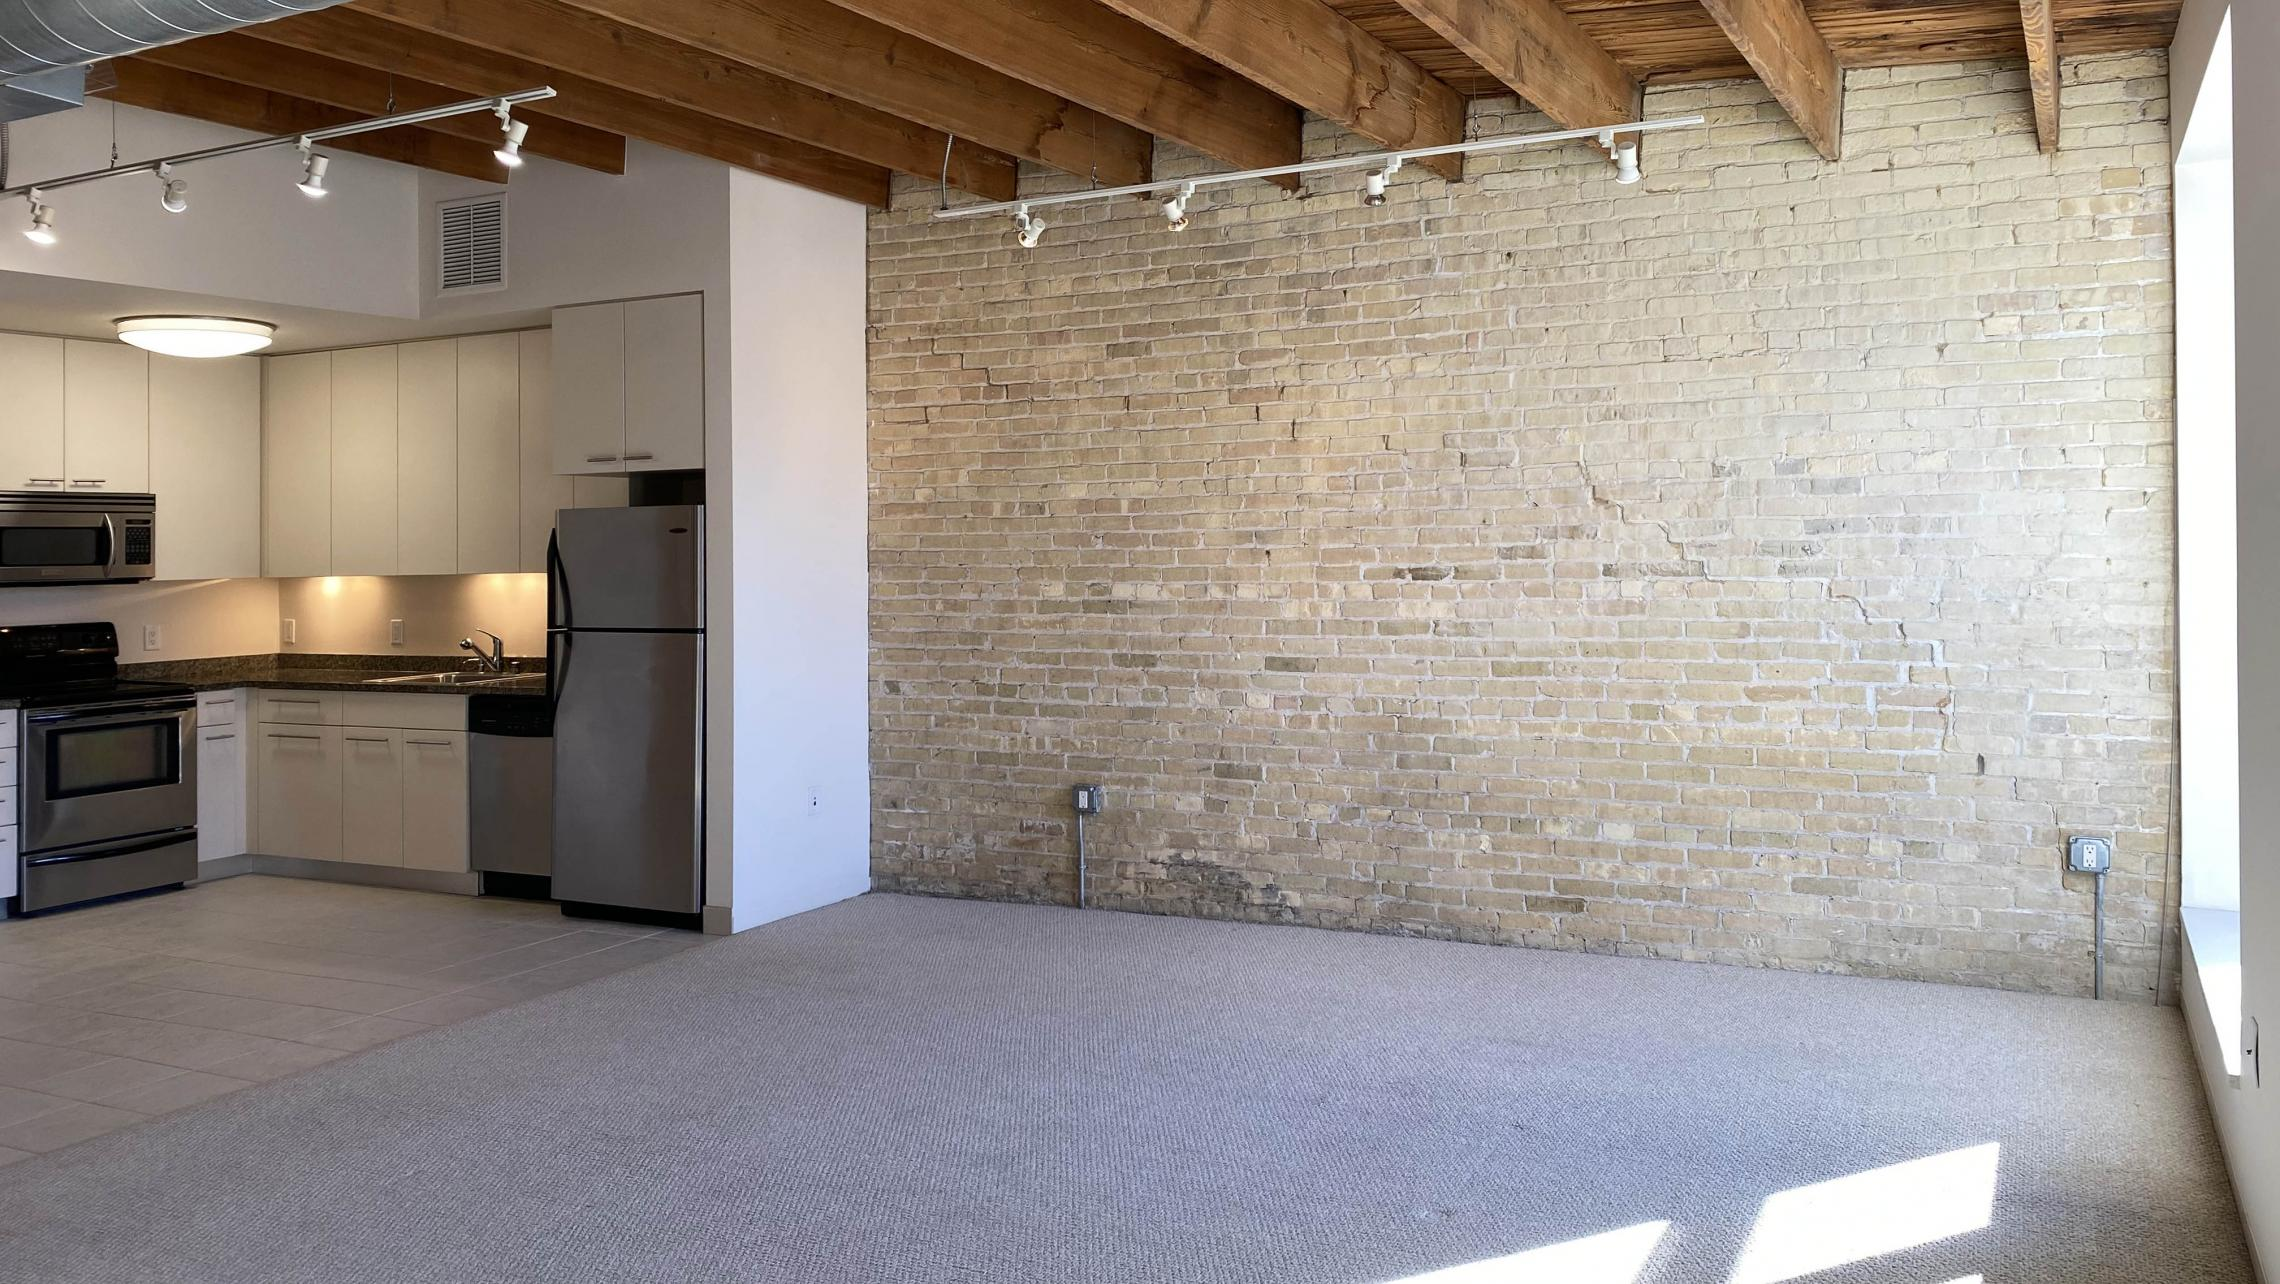 Tobacco-Lofts-at-The-Yards-Apartment-W206-Studio-Bathrom-Kitchen-Balcony-Historic-Exposed-Brick-Timber-Beams-Unique-Design-Cats-High-Ceiling-Balcony-Downtown-Madison-Fitness-Lounge-Courtyard-Top-Floor-Vaulted-Ceiling